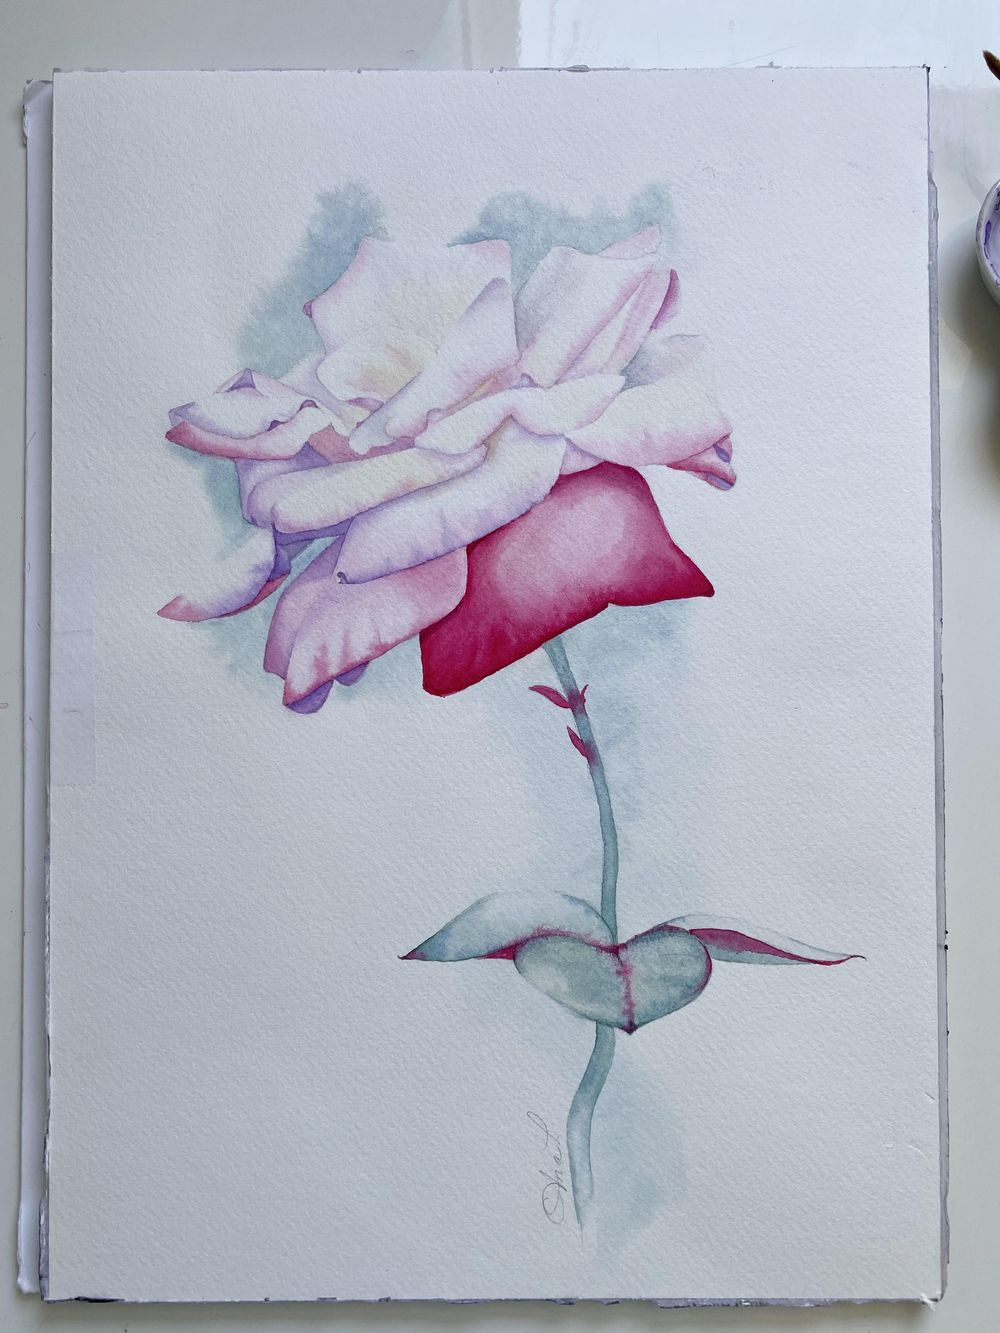 Watercolor Rose Ana T - image 2 - student project